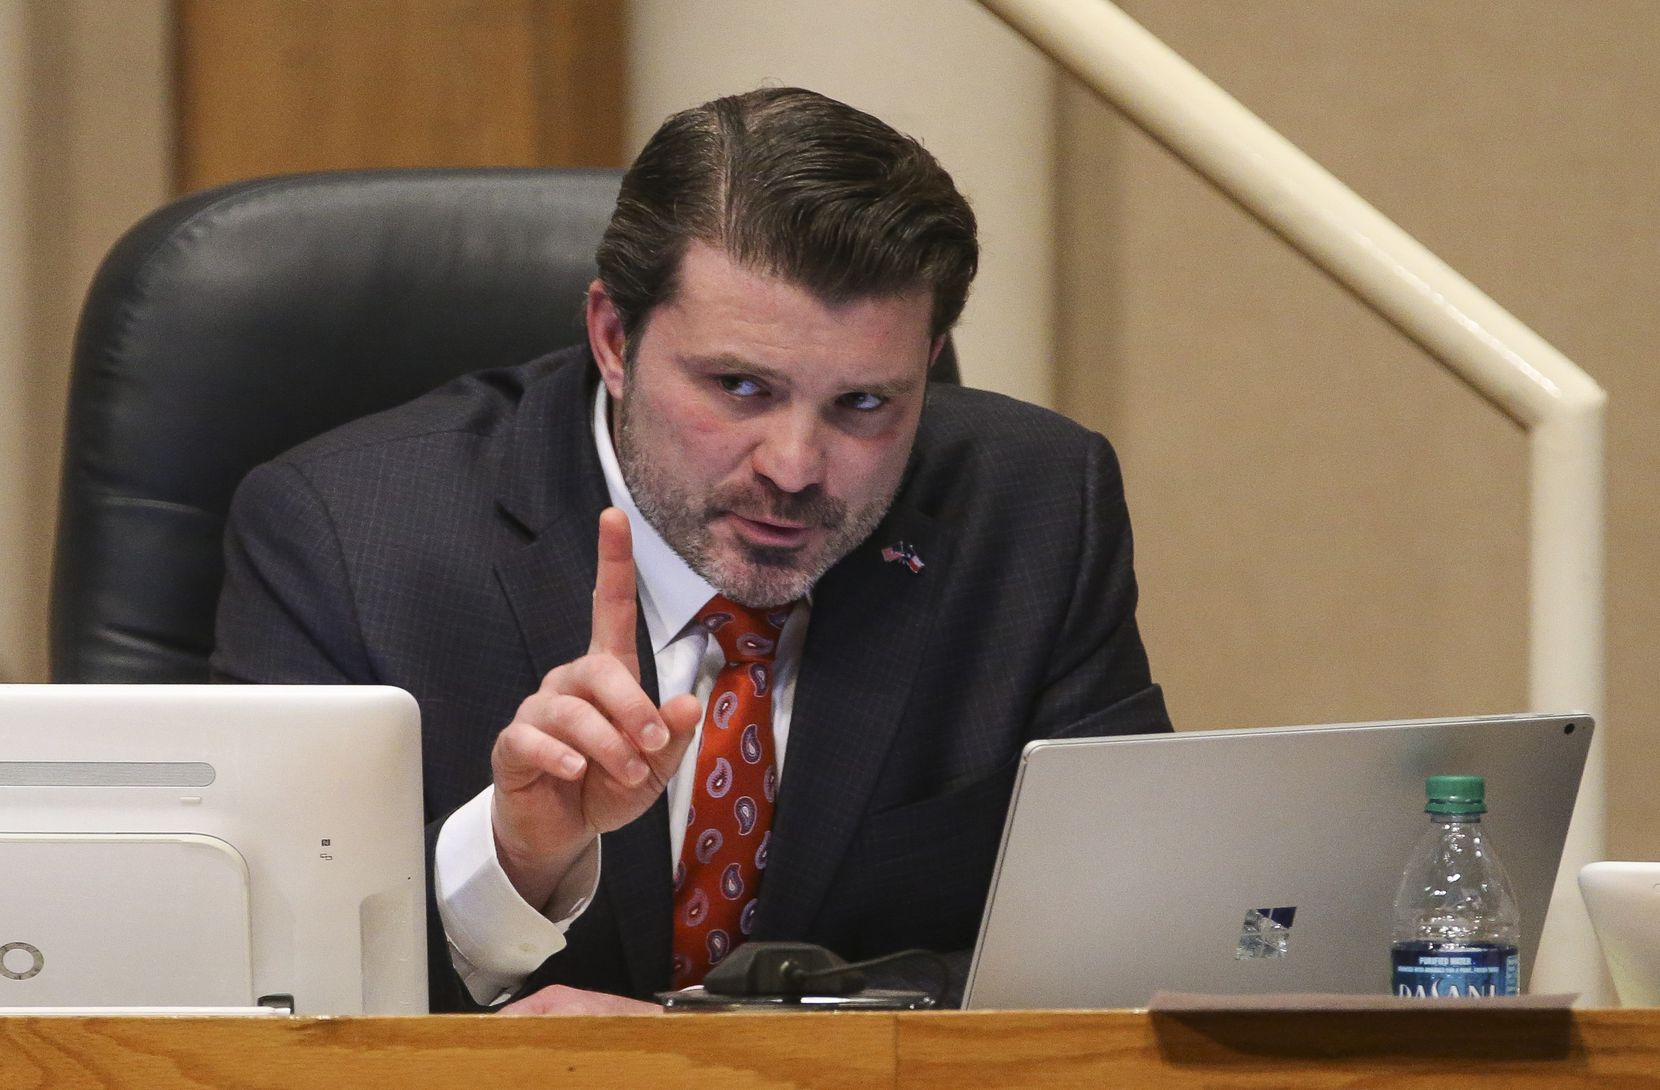 District 2 Commissioner J.J. Koch speaks during a meeting of The Dallas County Commissioners Court on Tuesday, Jan. 15, 2019 at the Dallas County Administration Building in Dallas. (Ryan Michalesko/The Dallas Morning News)